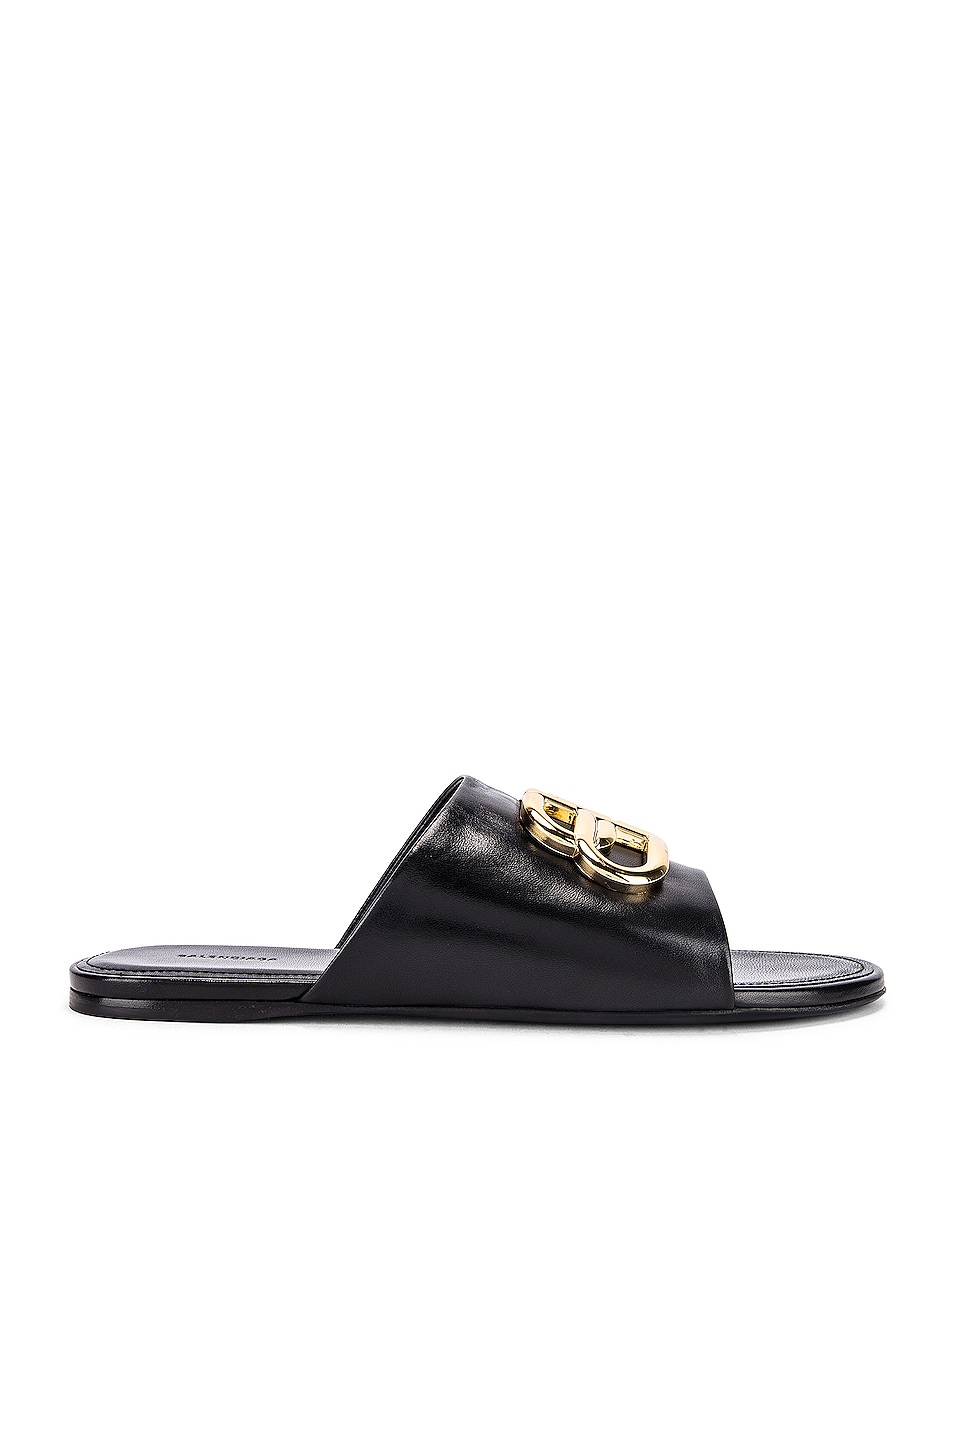 Image 2 of Balenciaga Ovall BB Slides in Black & Gold